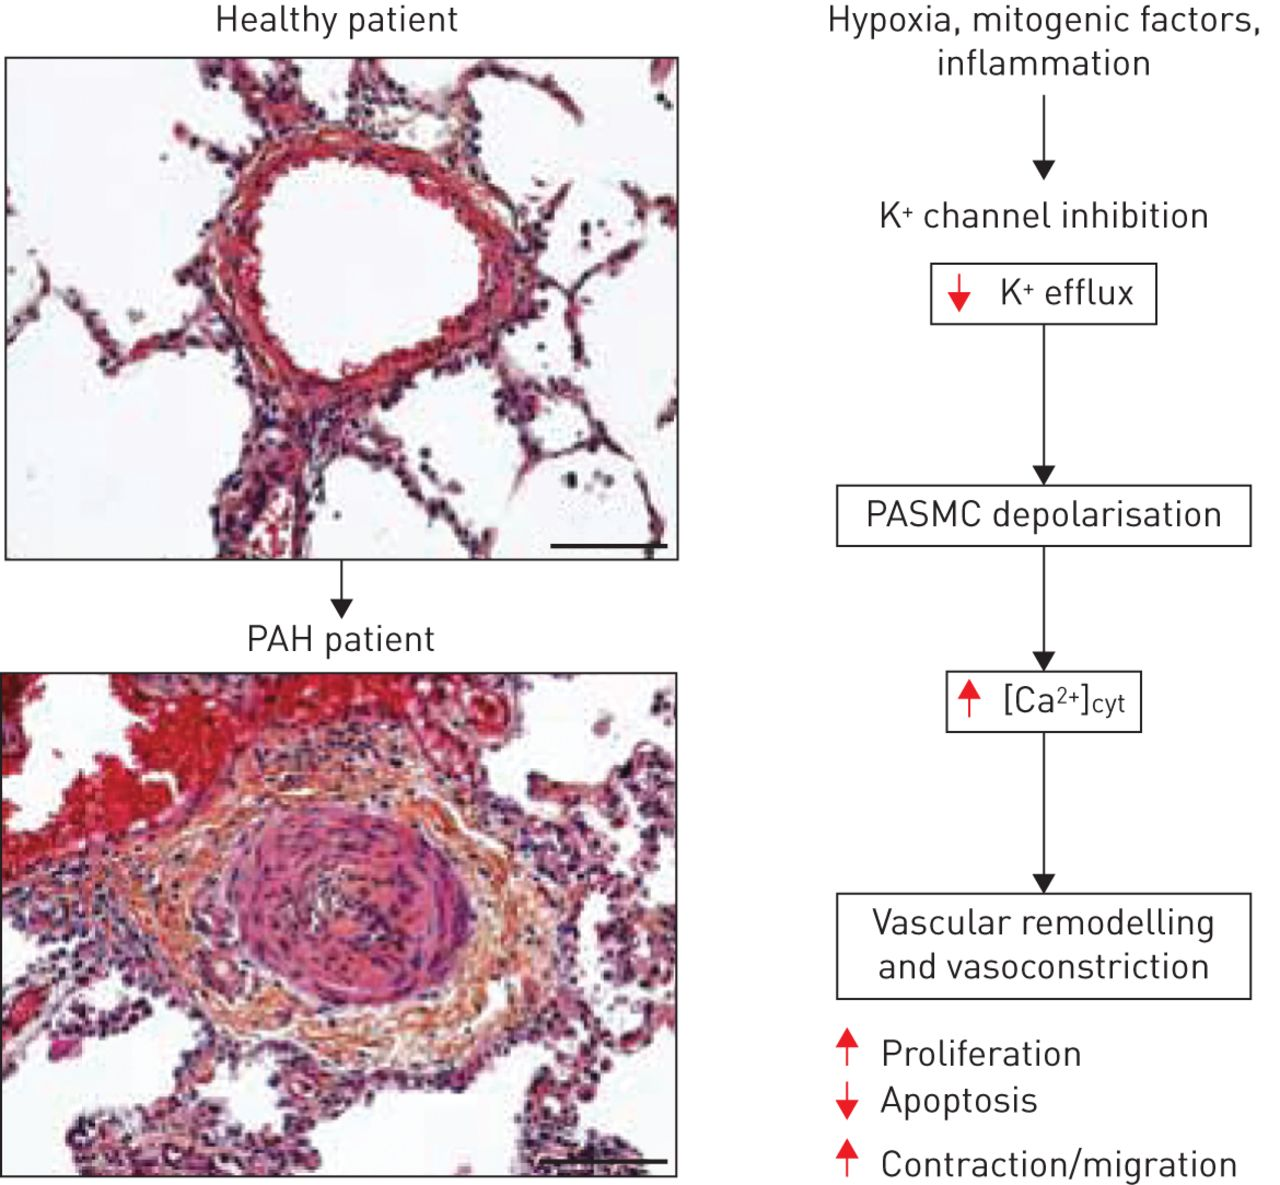 Potassium channels in pulmonary arterial hypertension | European